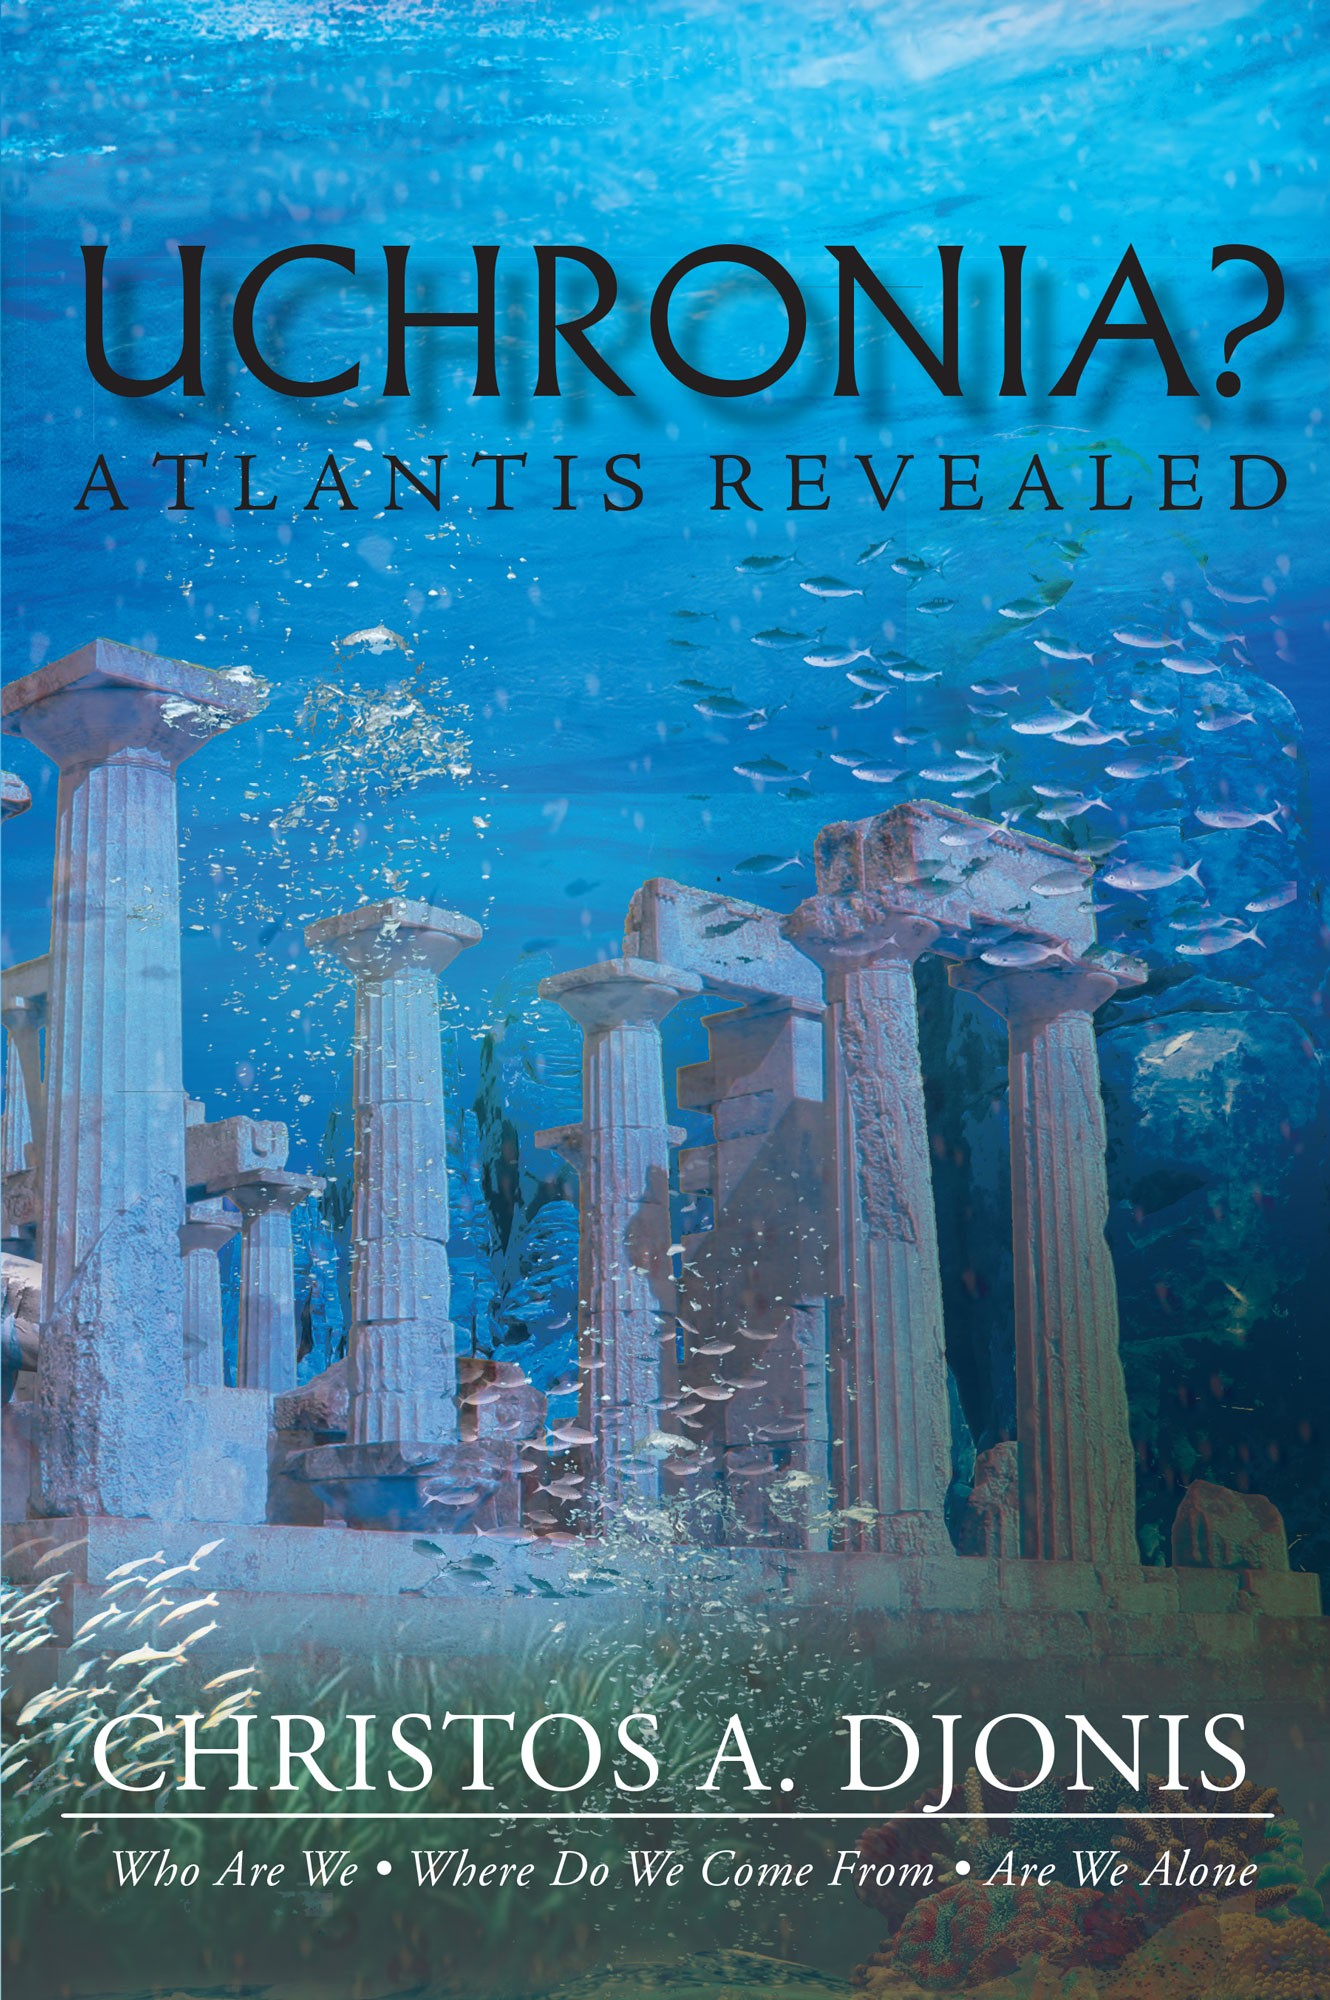 Djonis_Christos_6094_COVER_Ebook-1334x2000